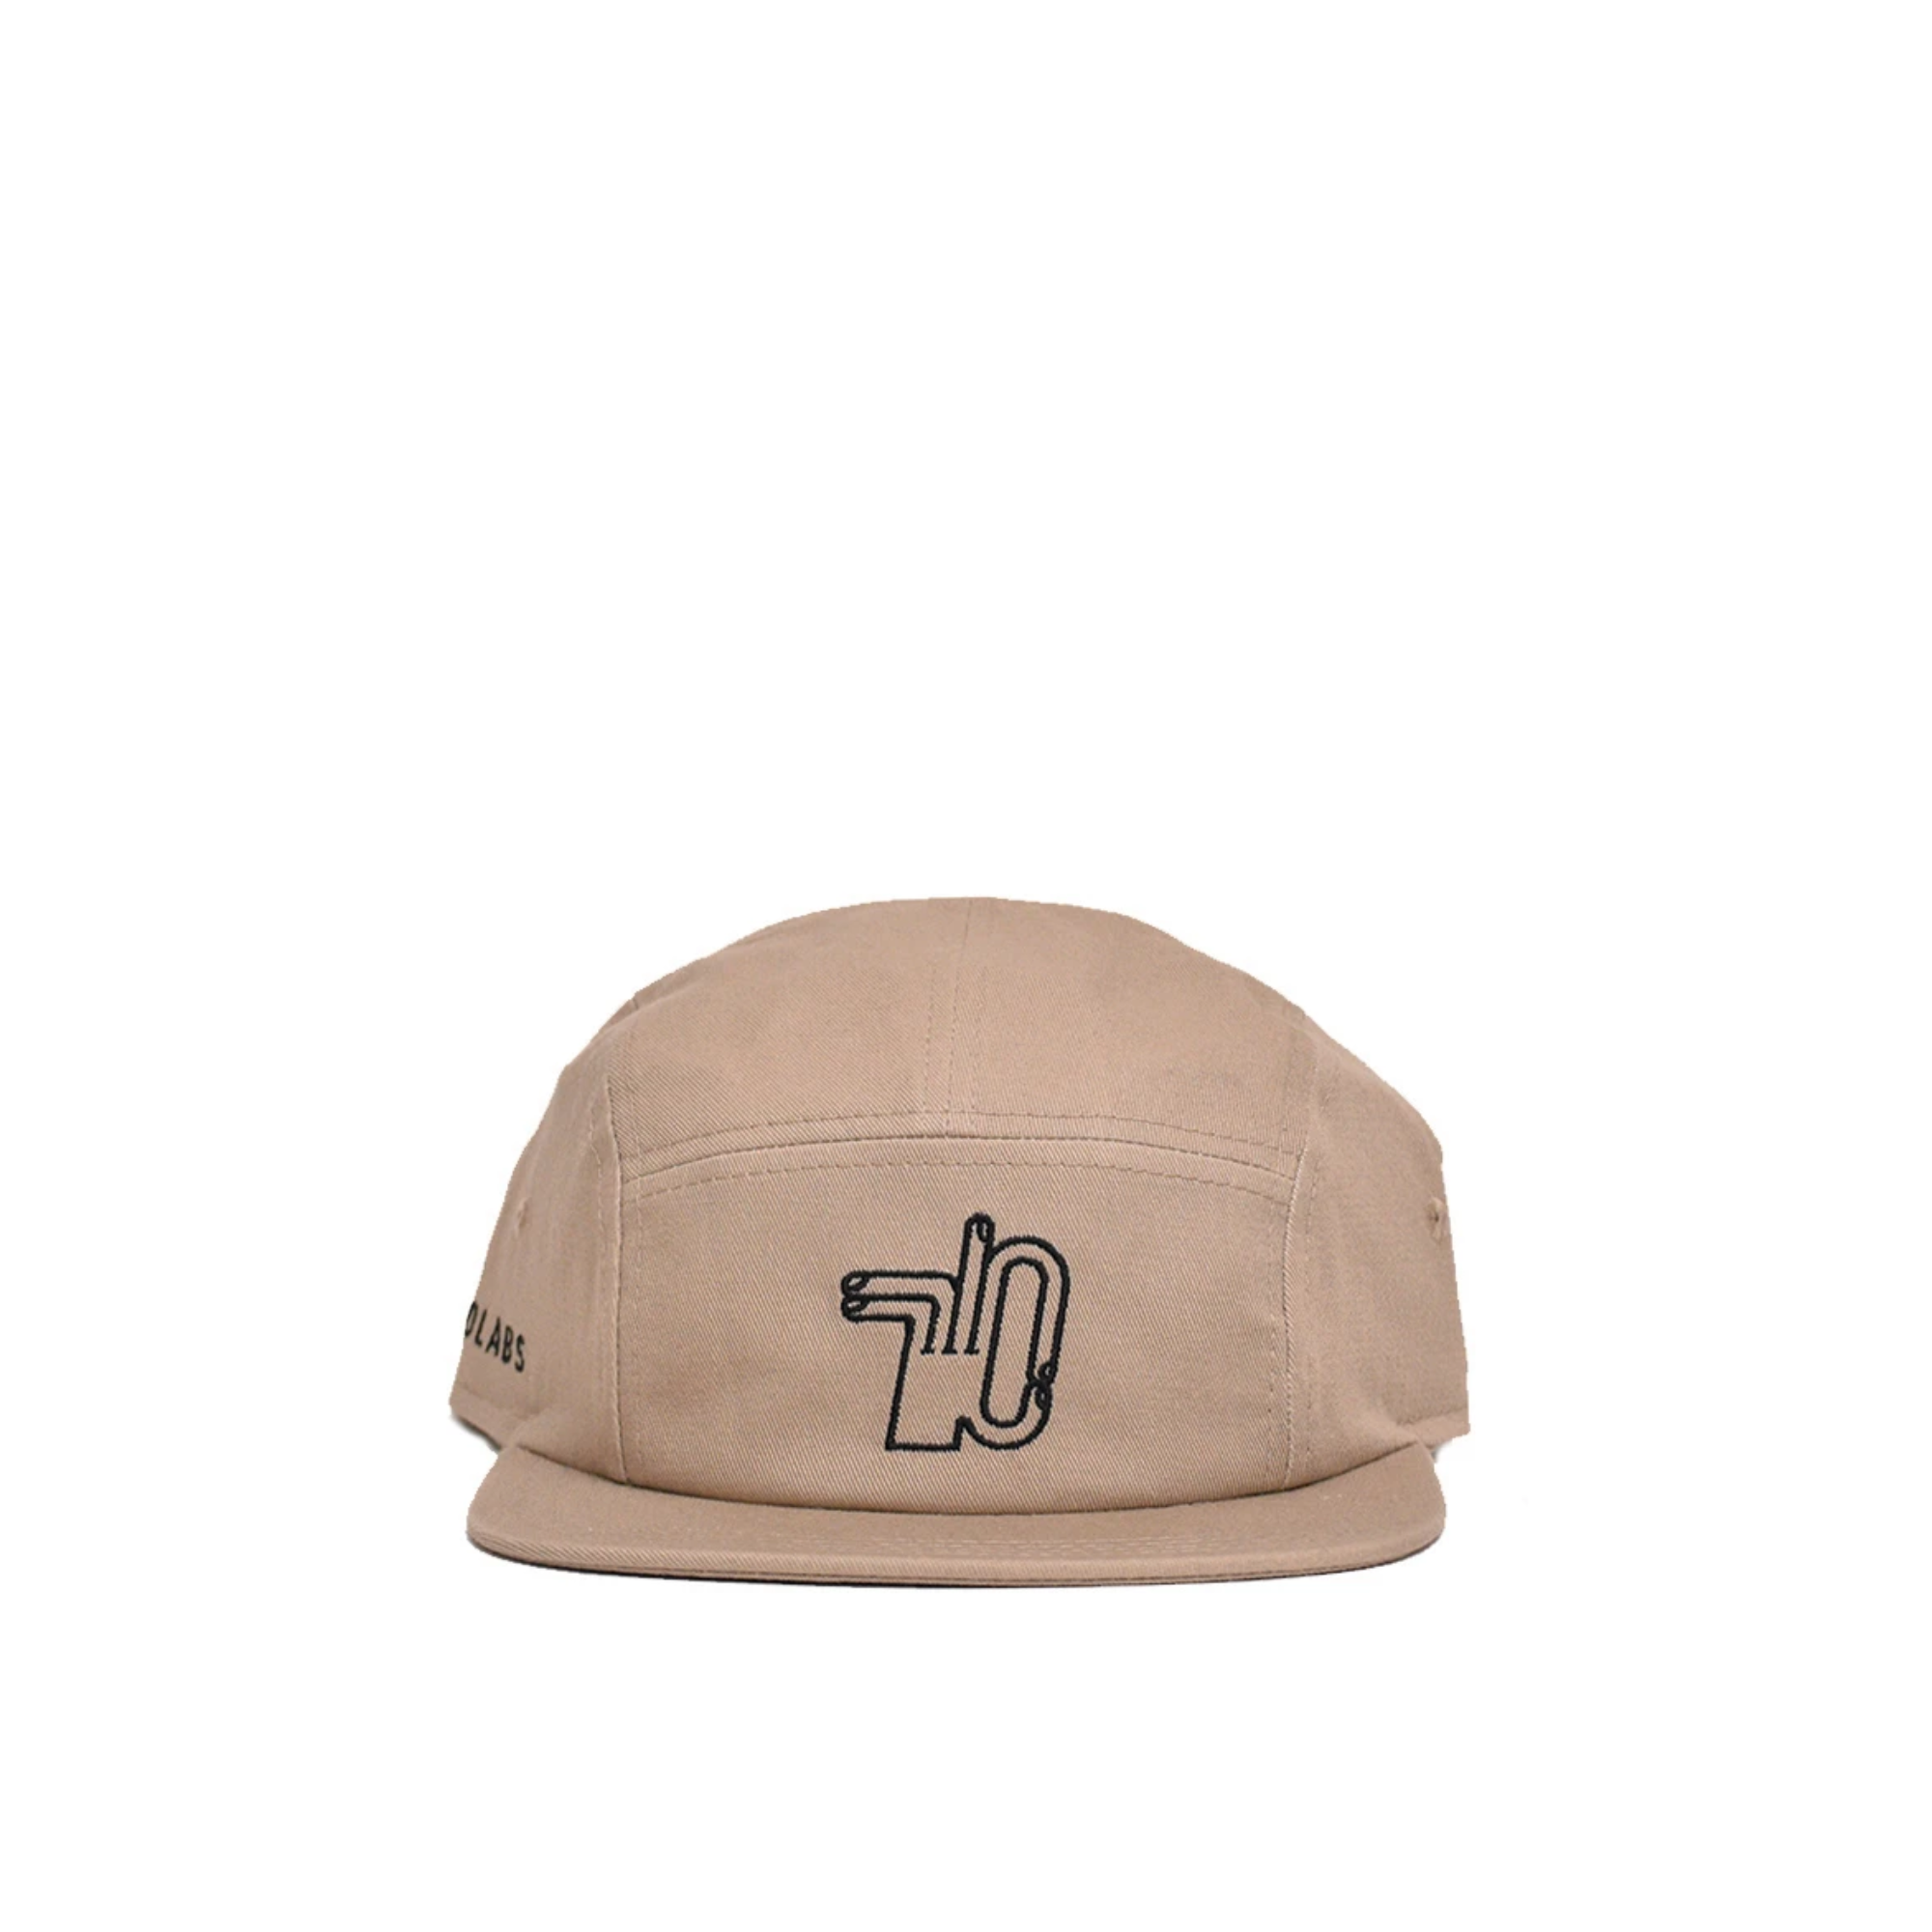 710 Labs logo hat